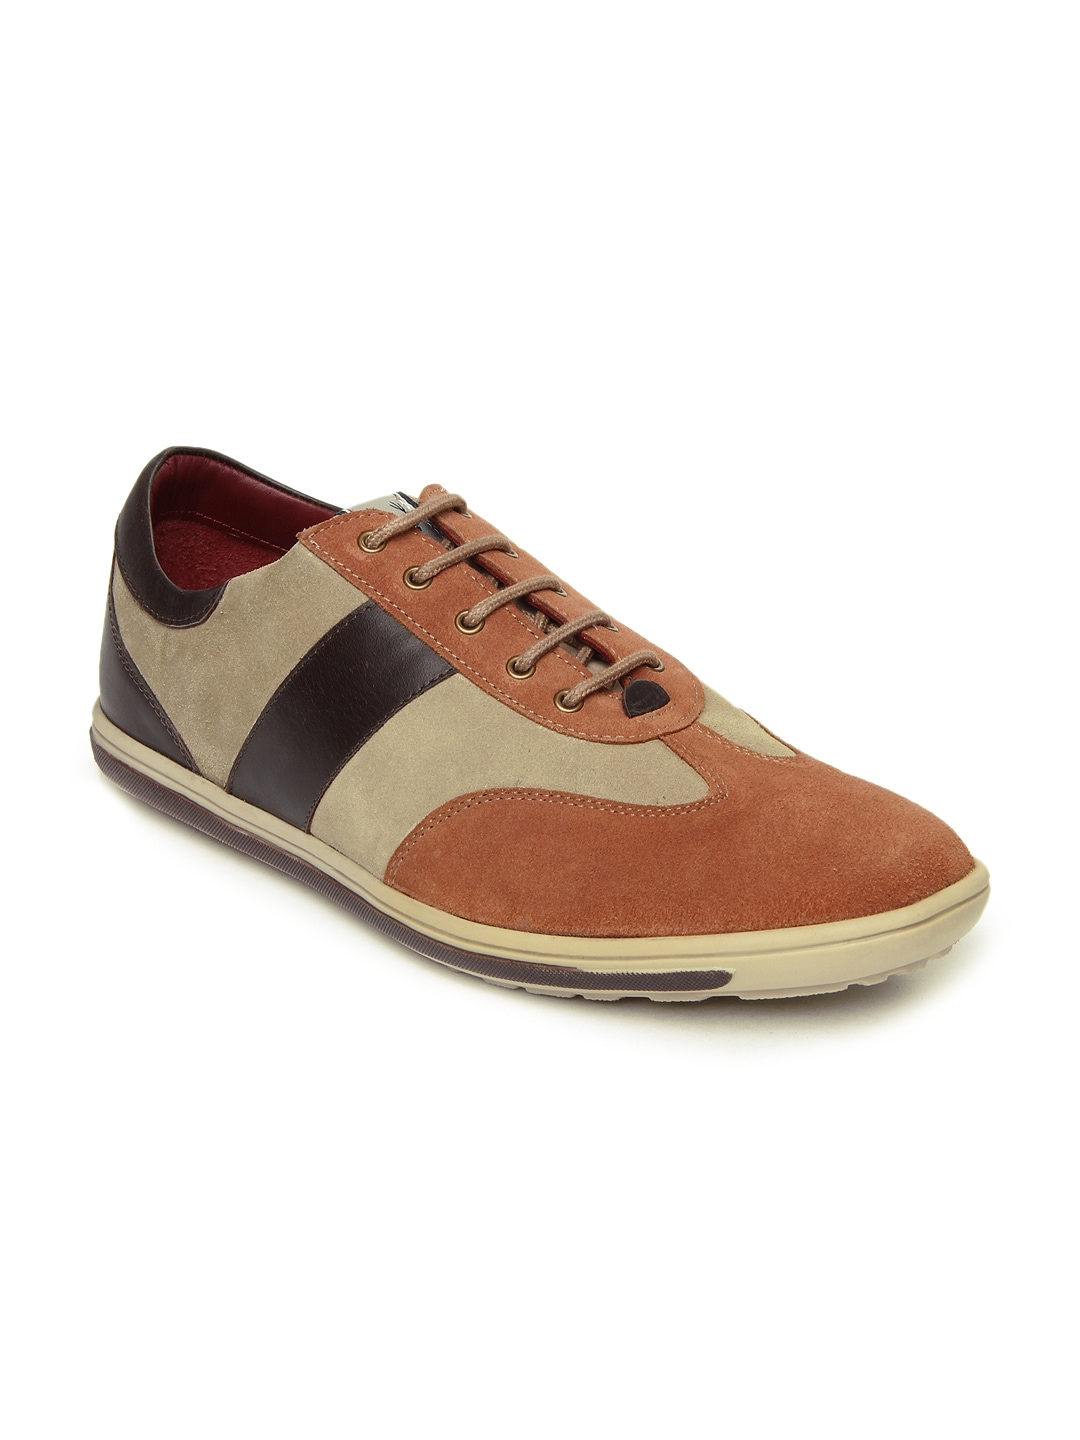 Allen solly shoes online shopping